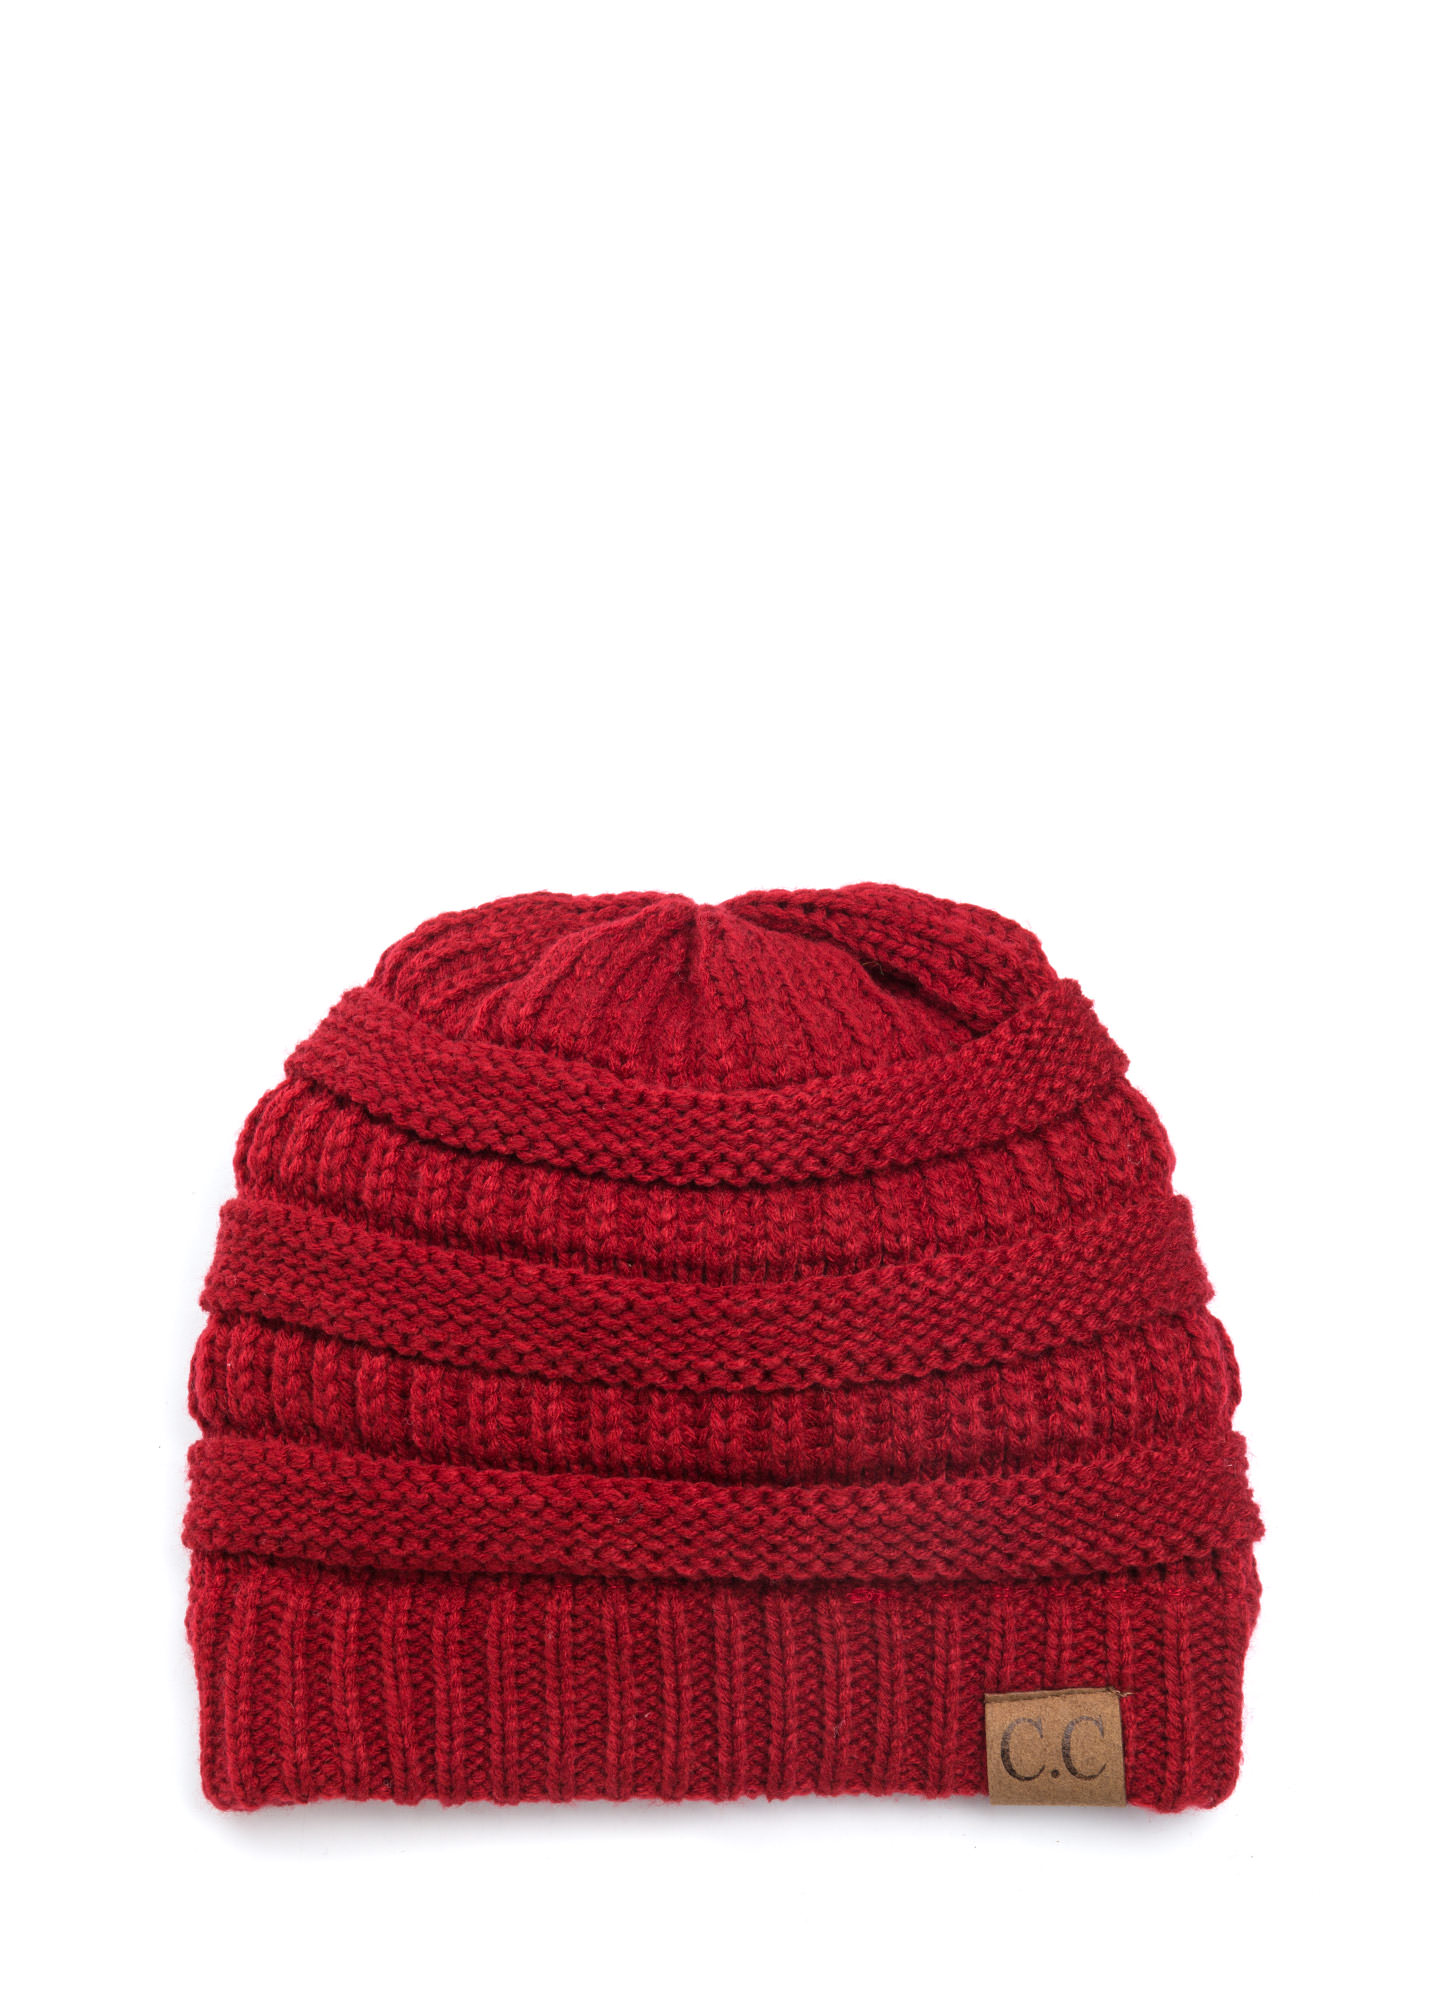 CC Cable Knit Beanie RED